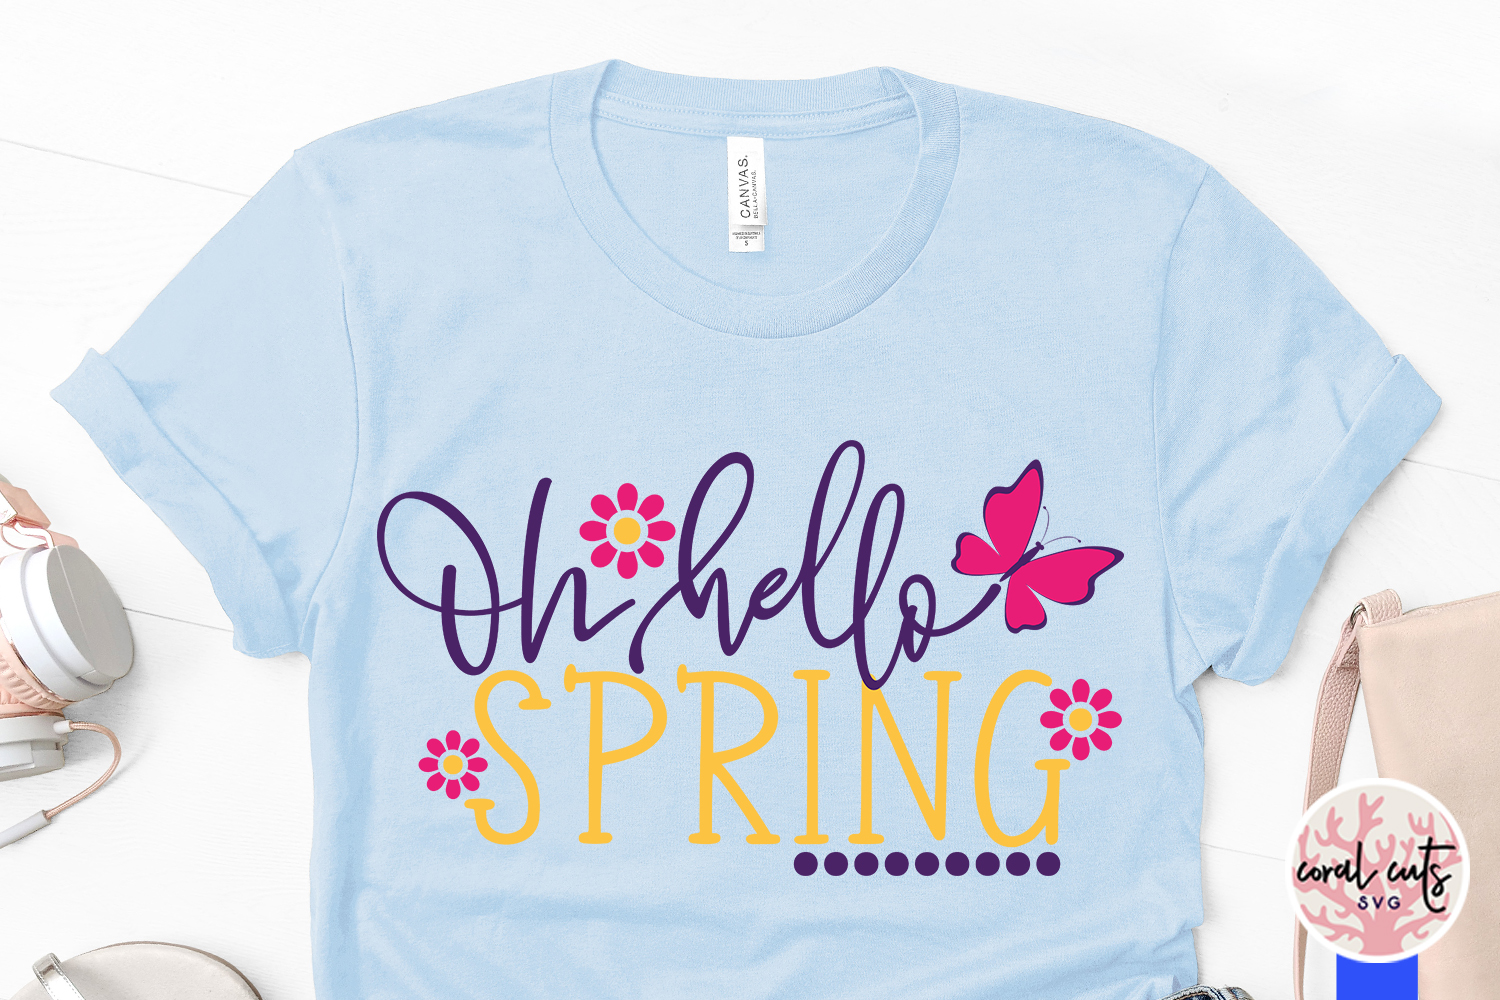 Oh hello spring - Easter SVG EPS DXF PNG Cutting File example image 3